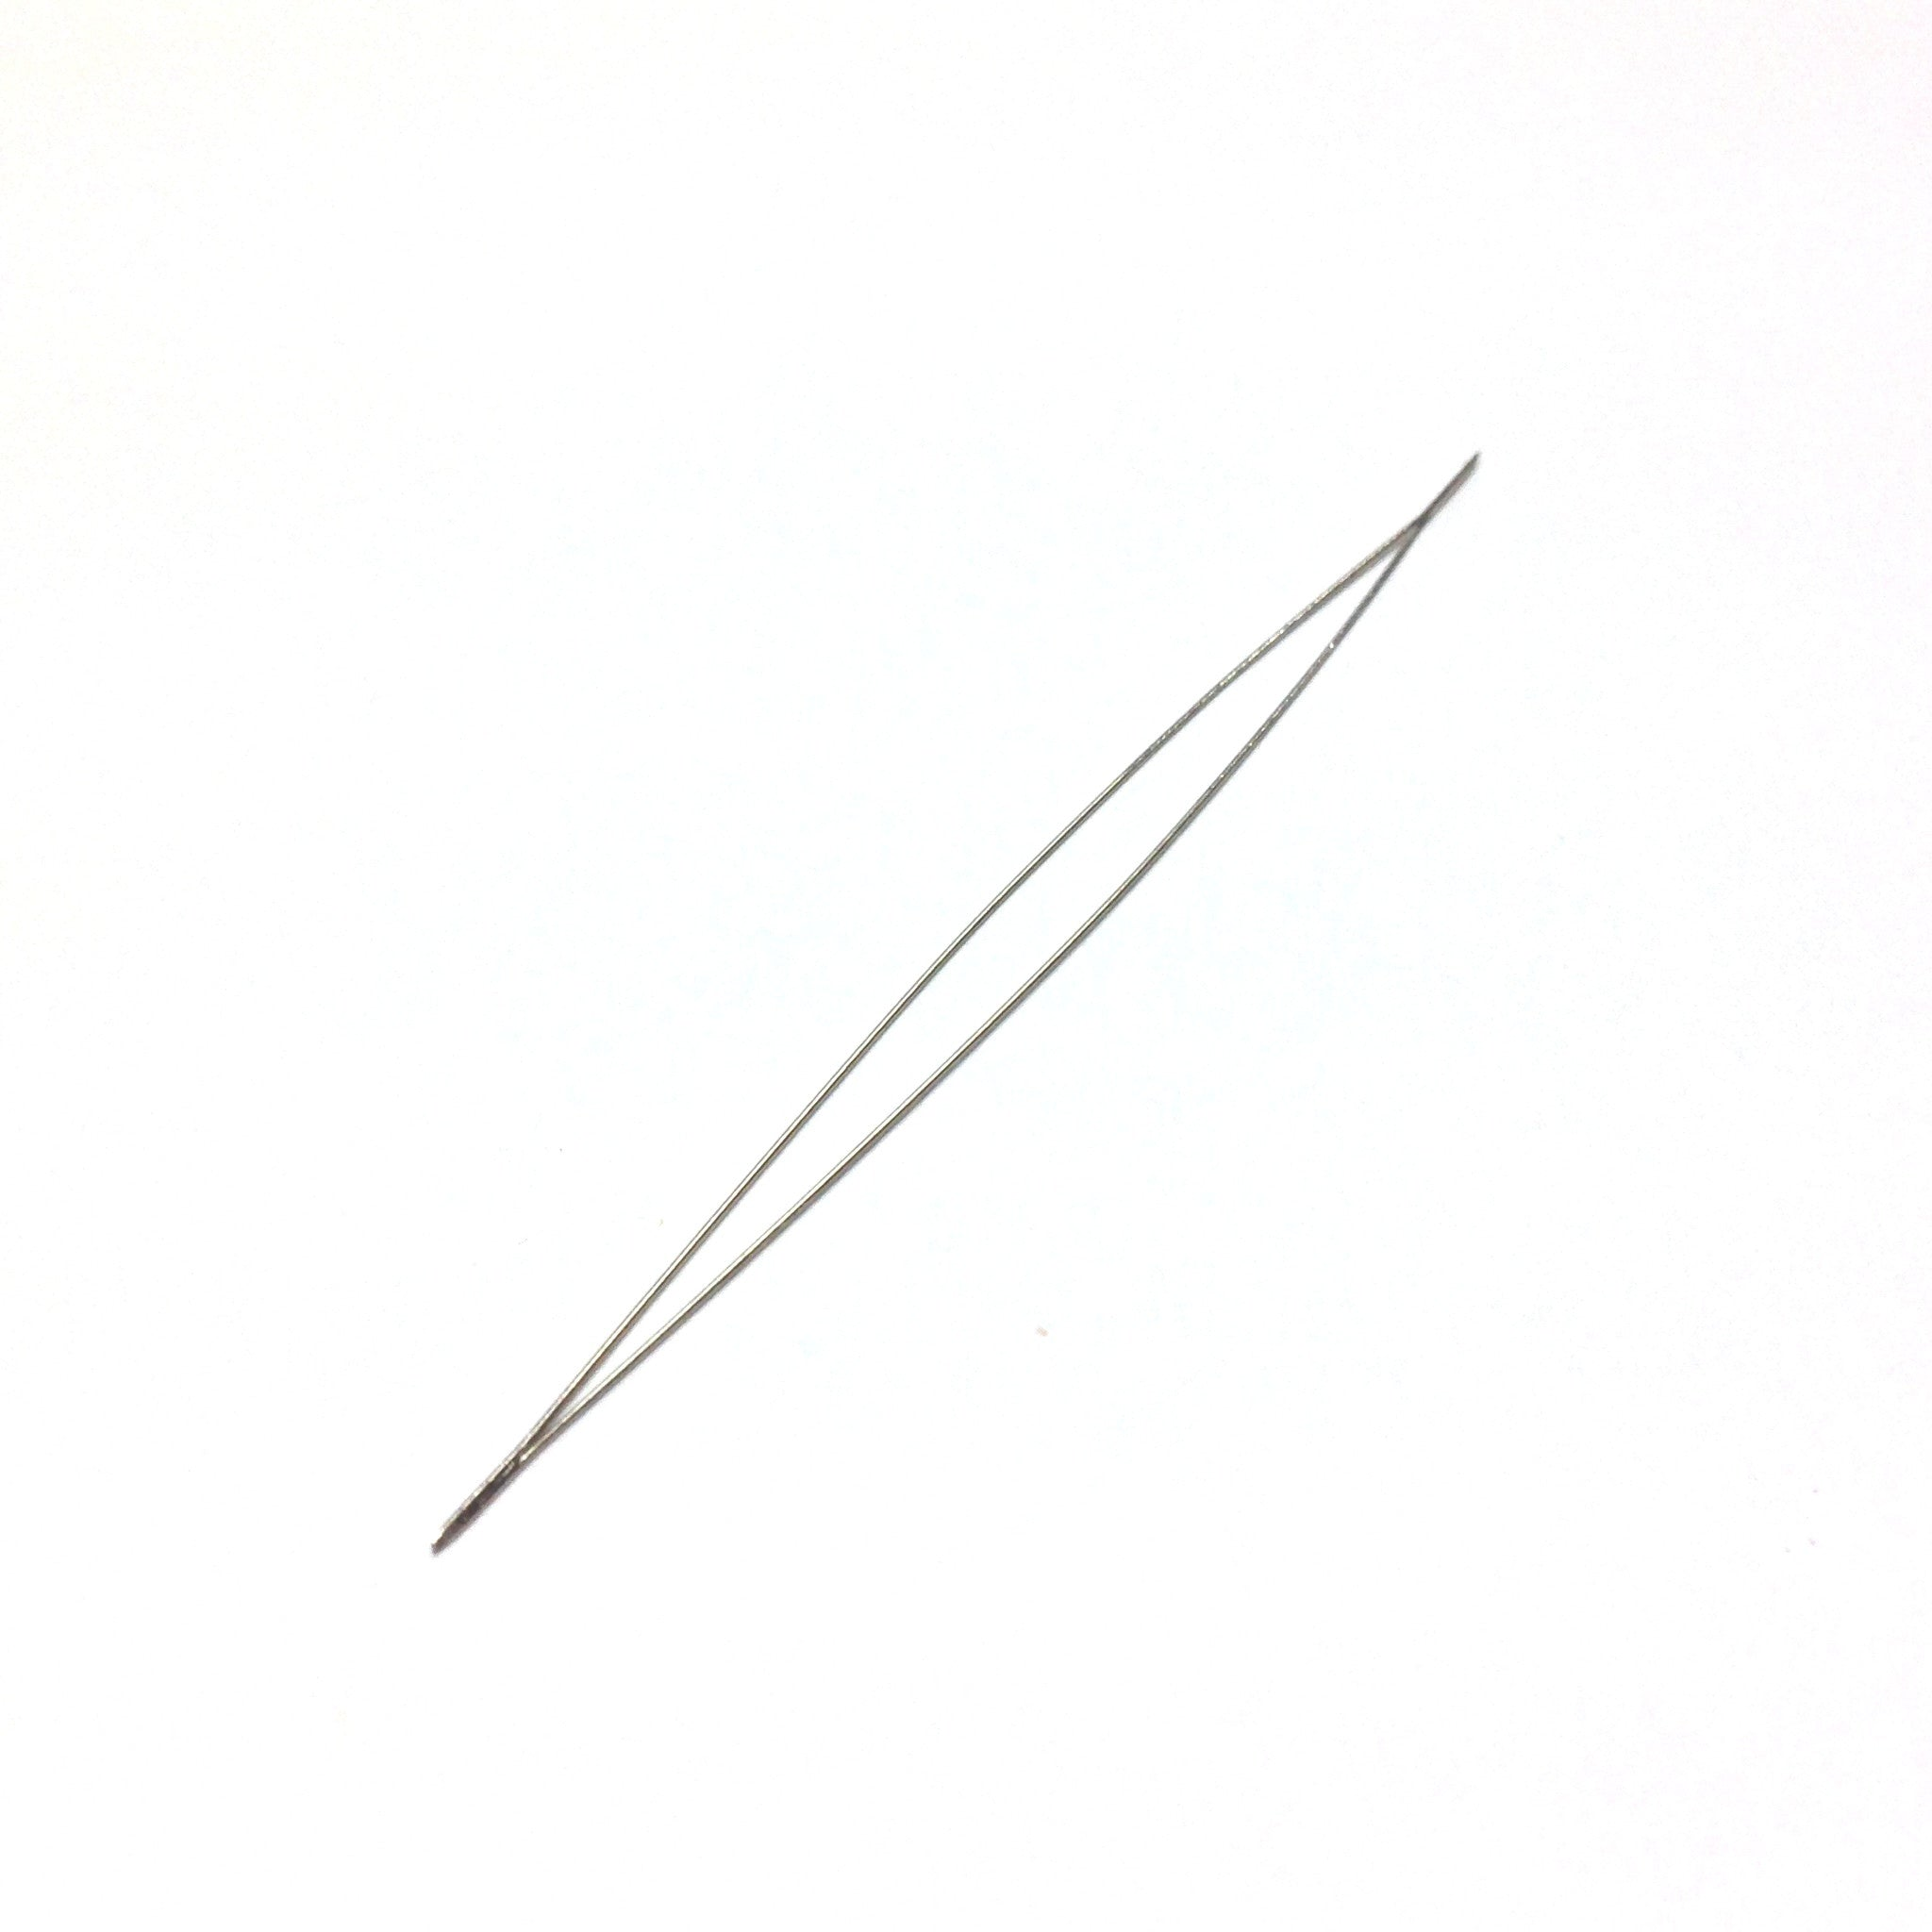 "2-1/2"" Big Eye Needle (50 Pcs. Per Package)"